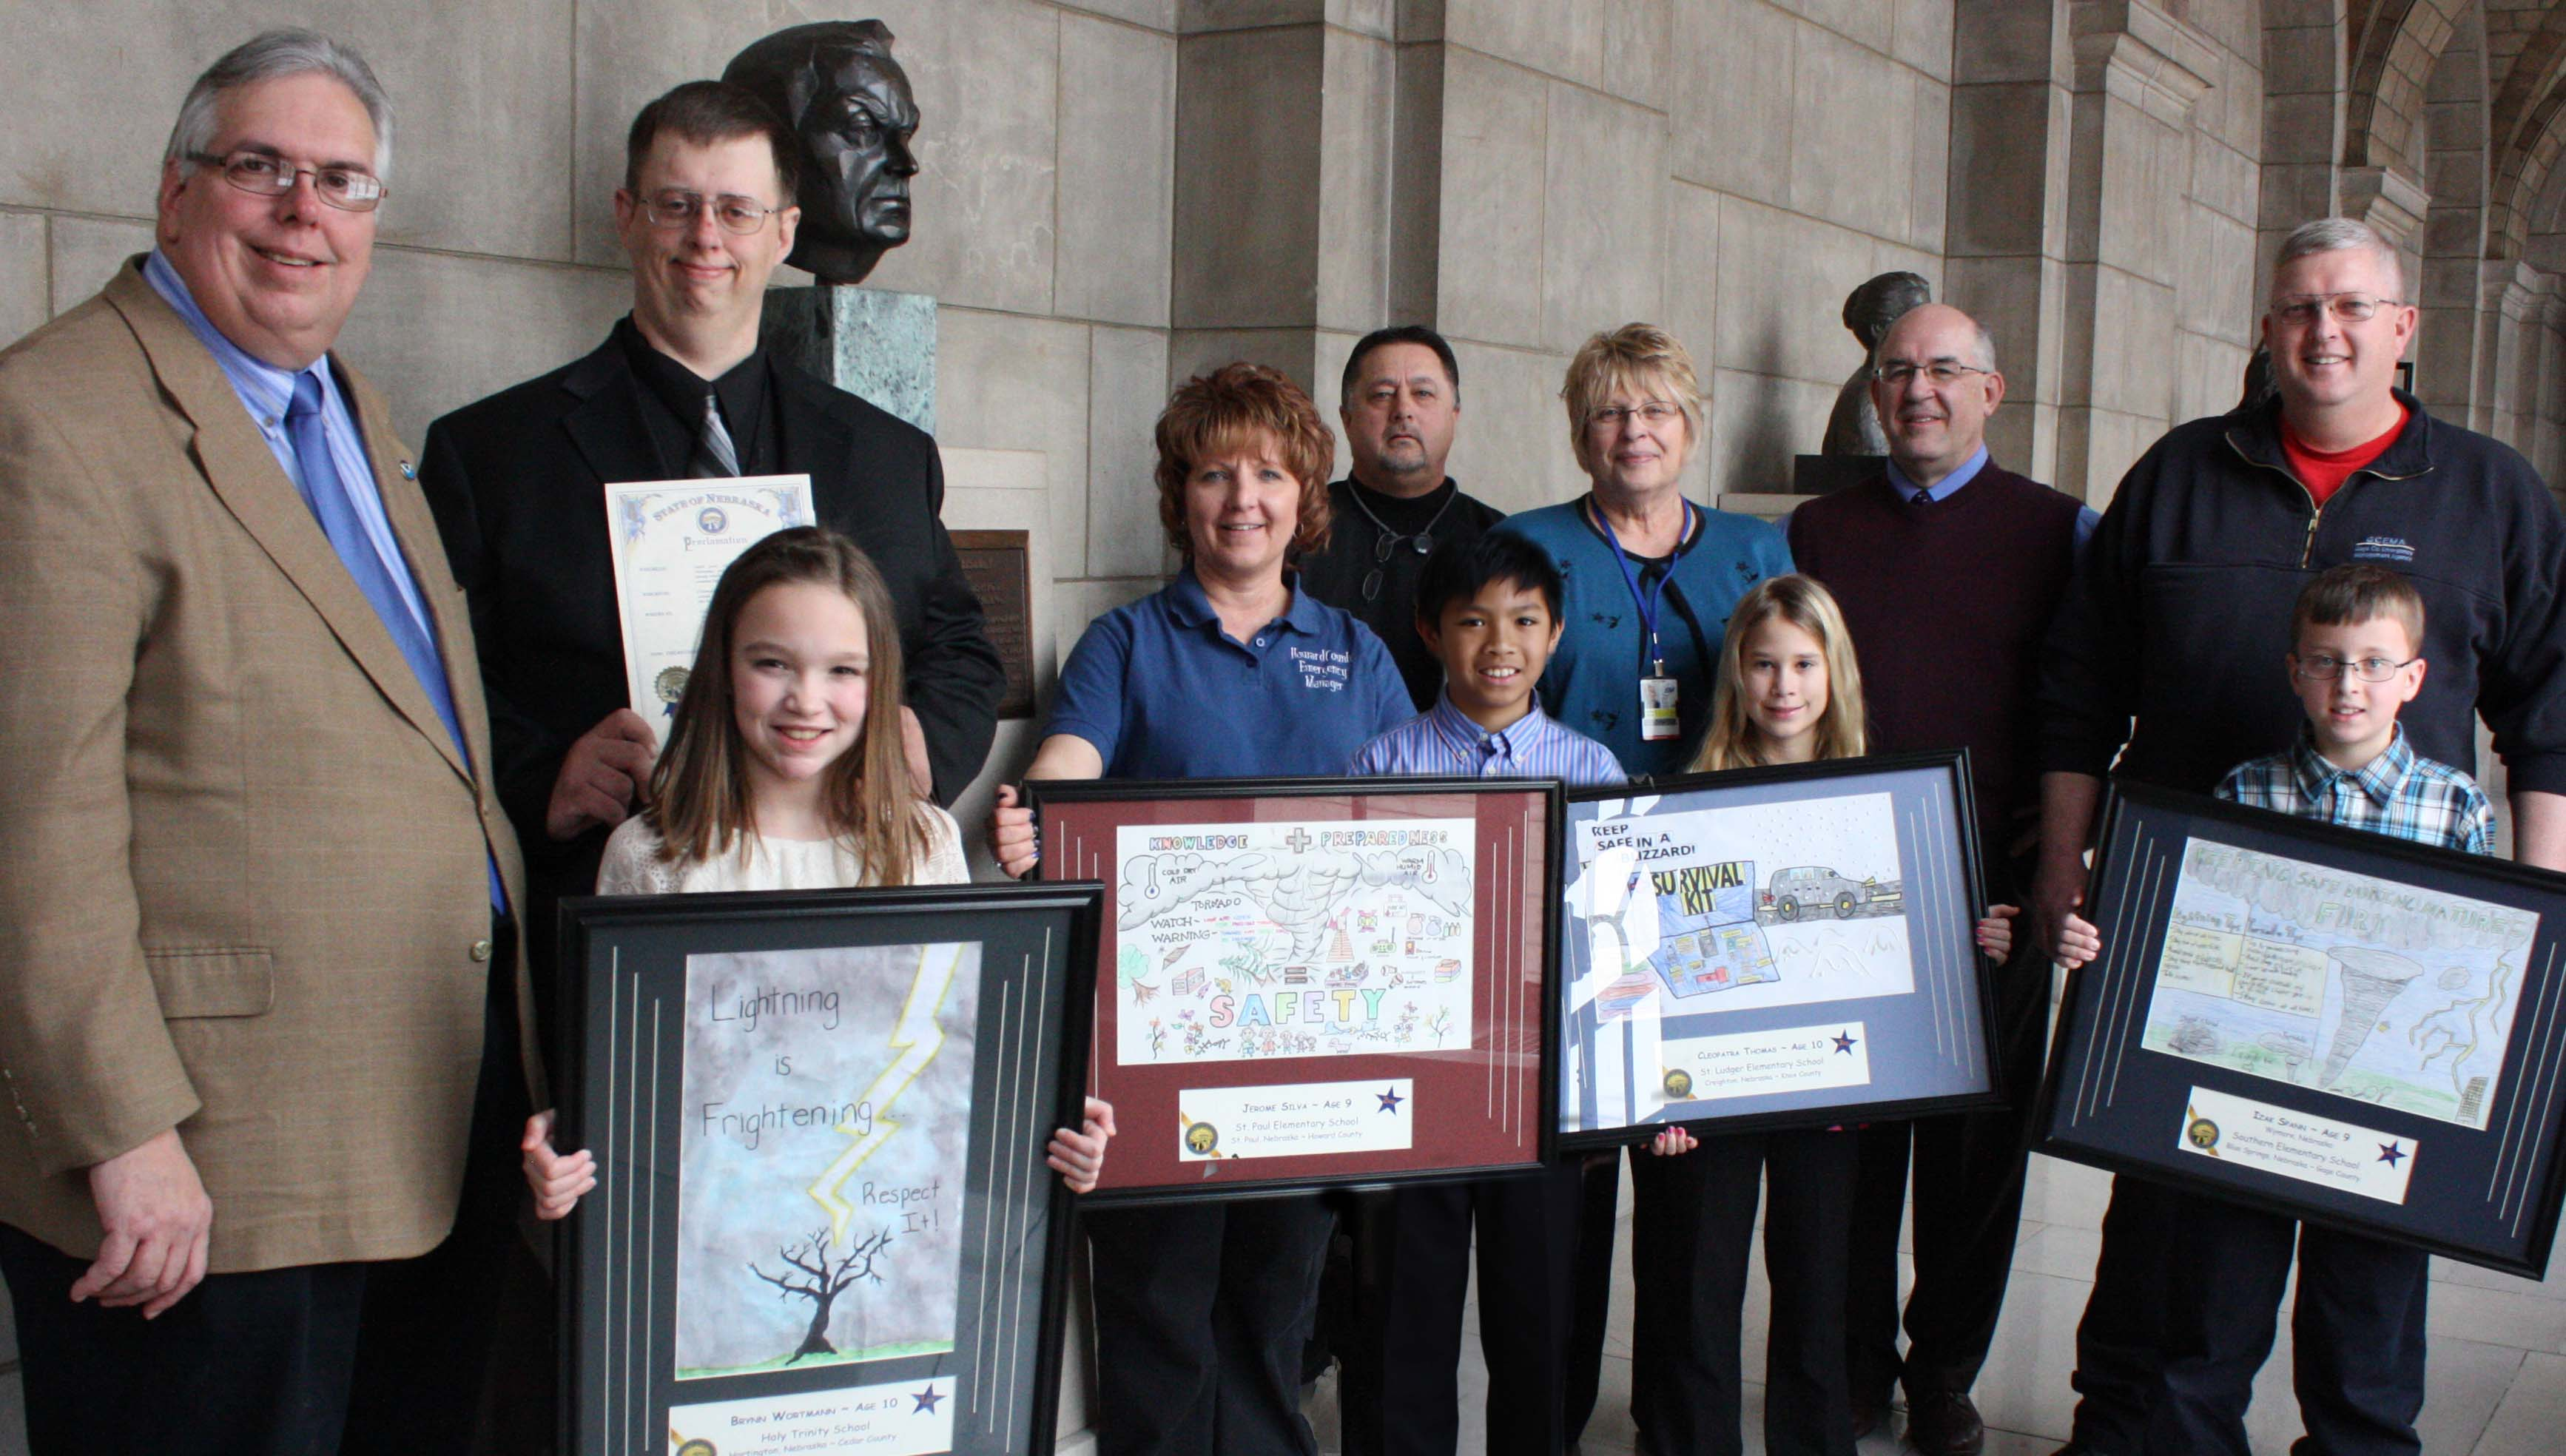 2013 Nebraska Severe Weather Poster Winners